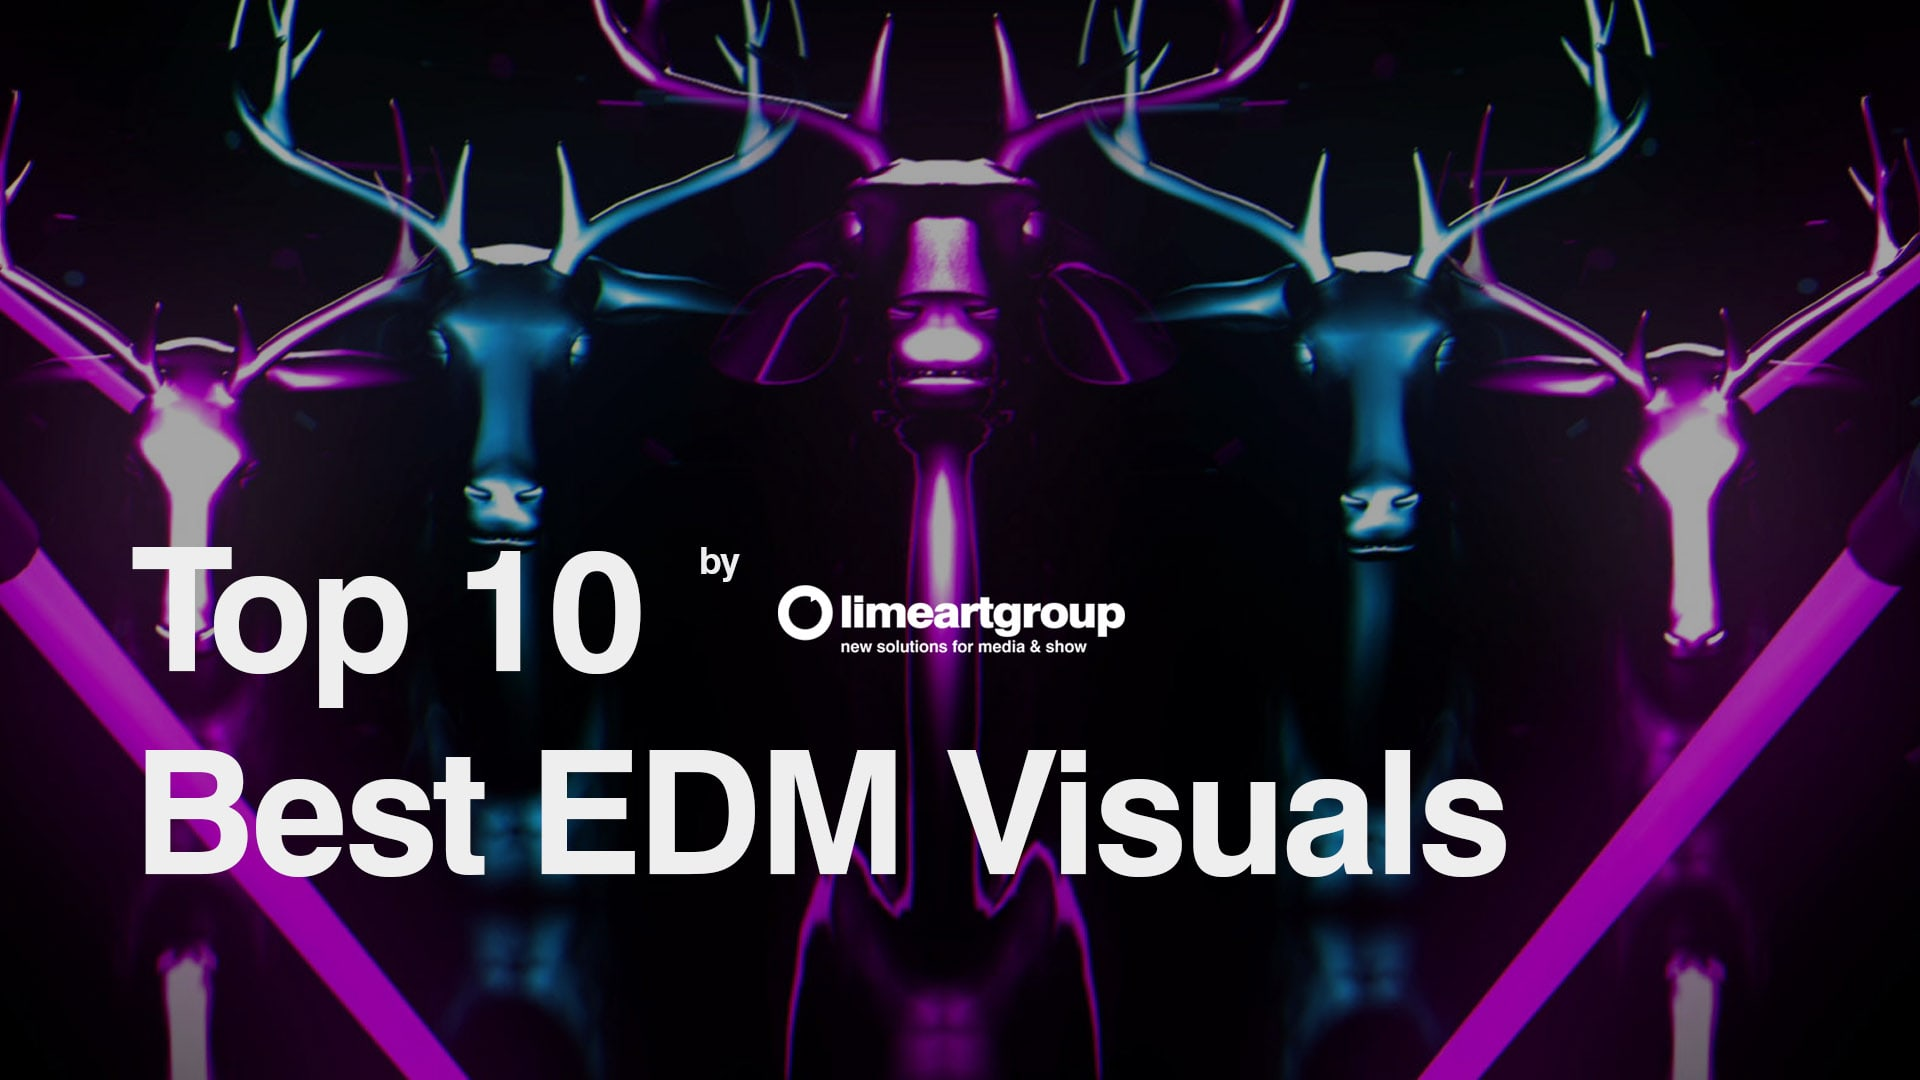 Top 10 edm visuals